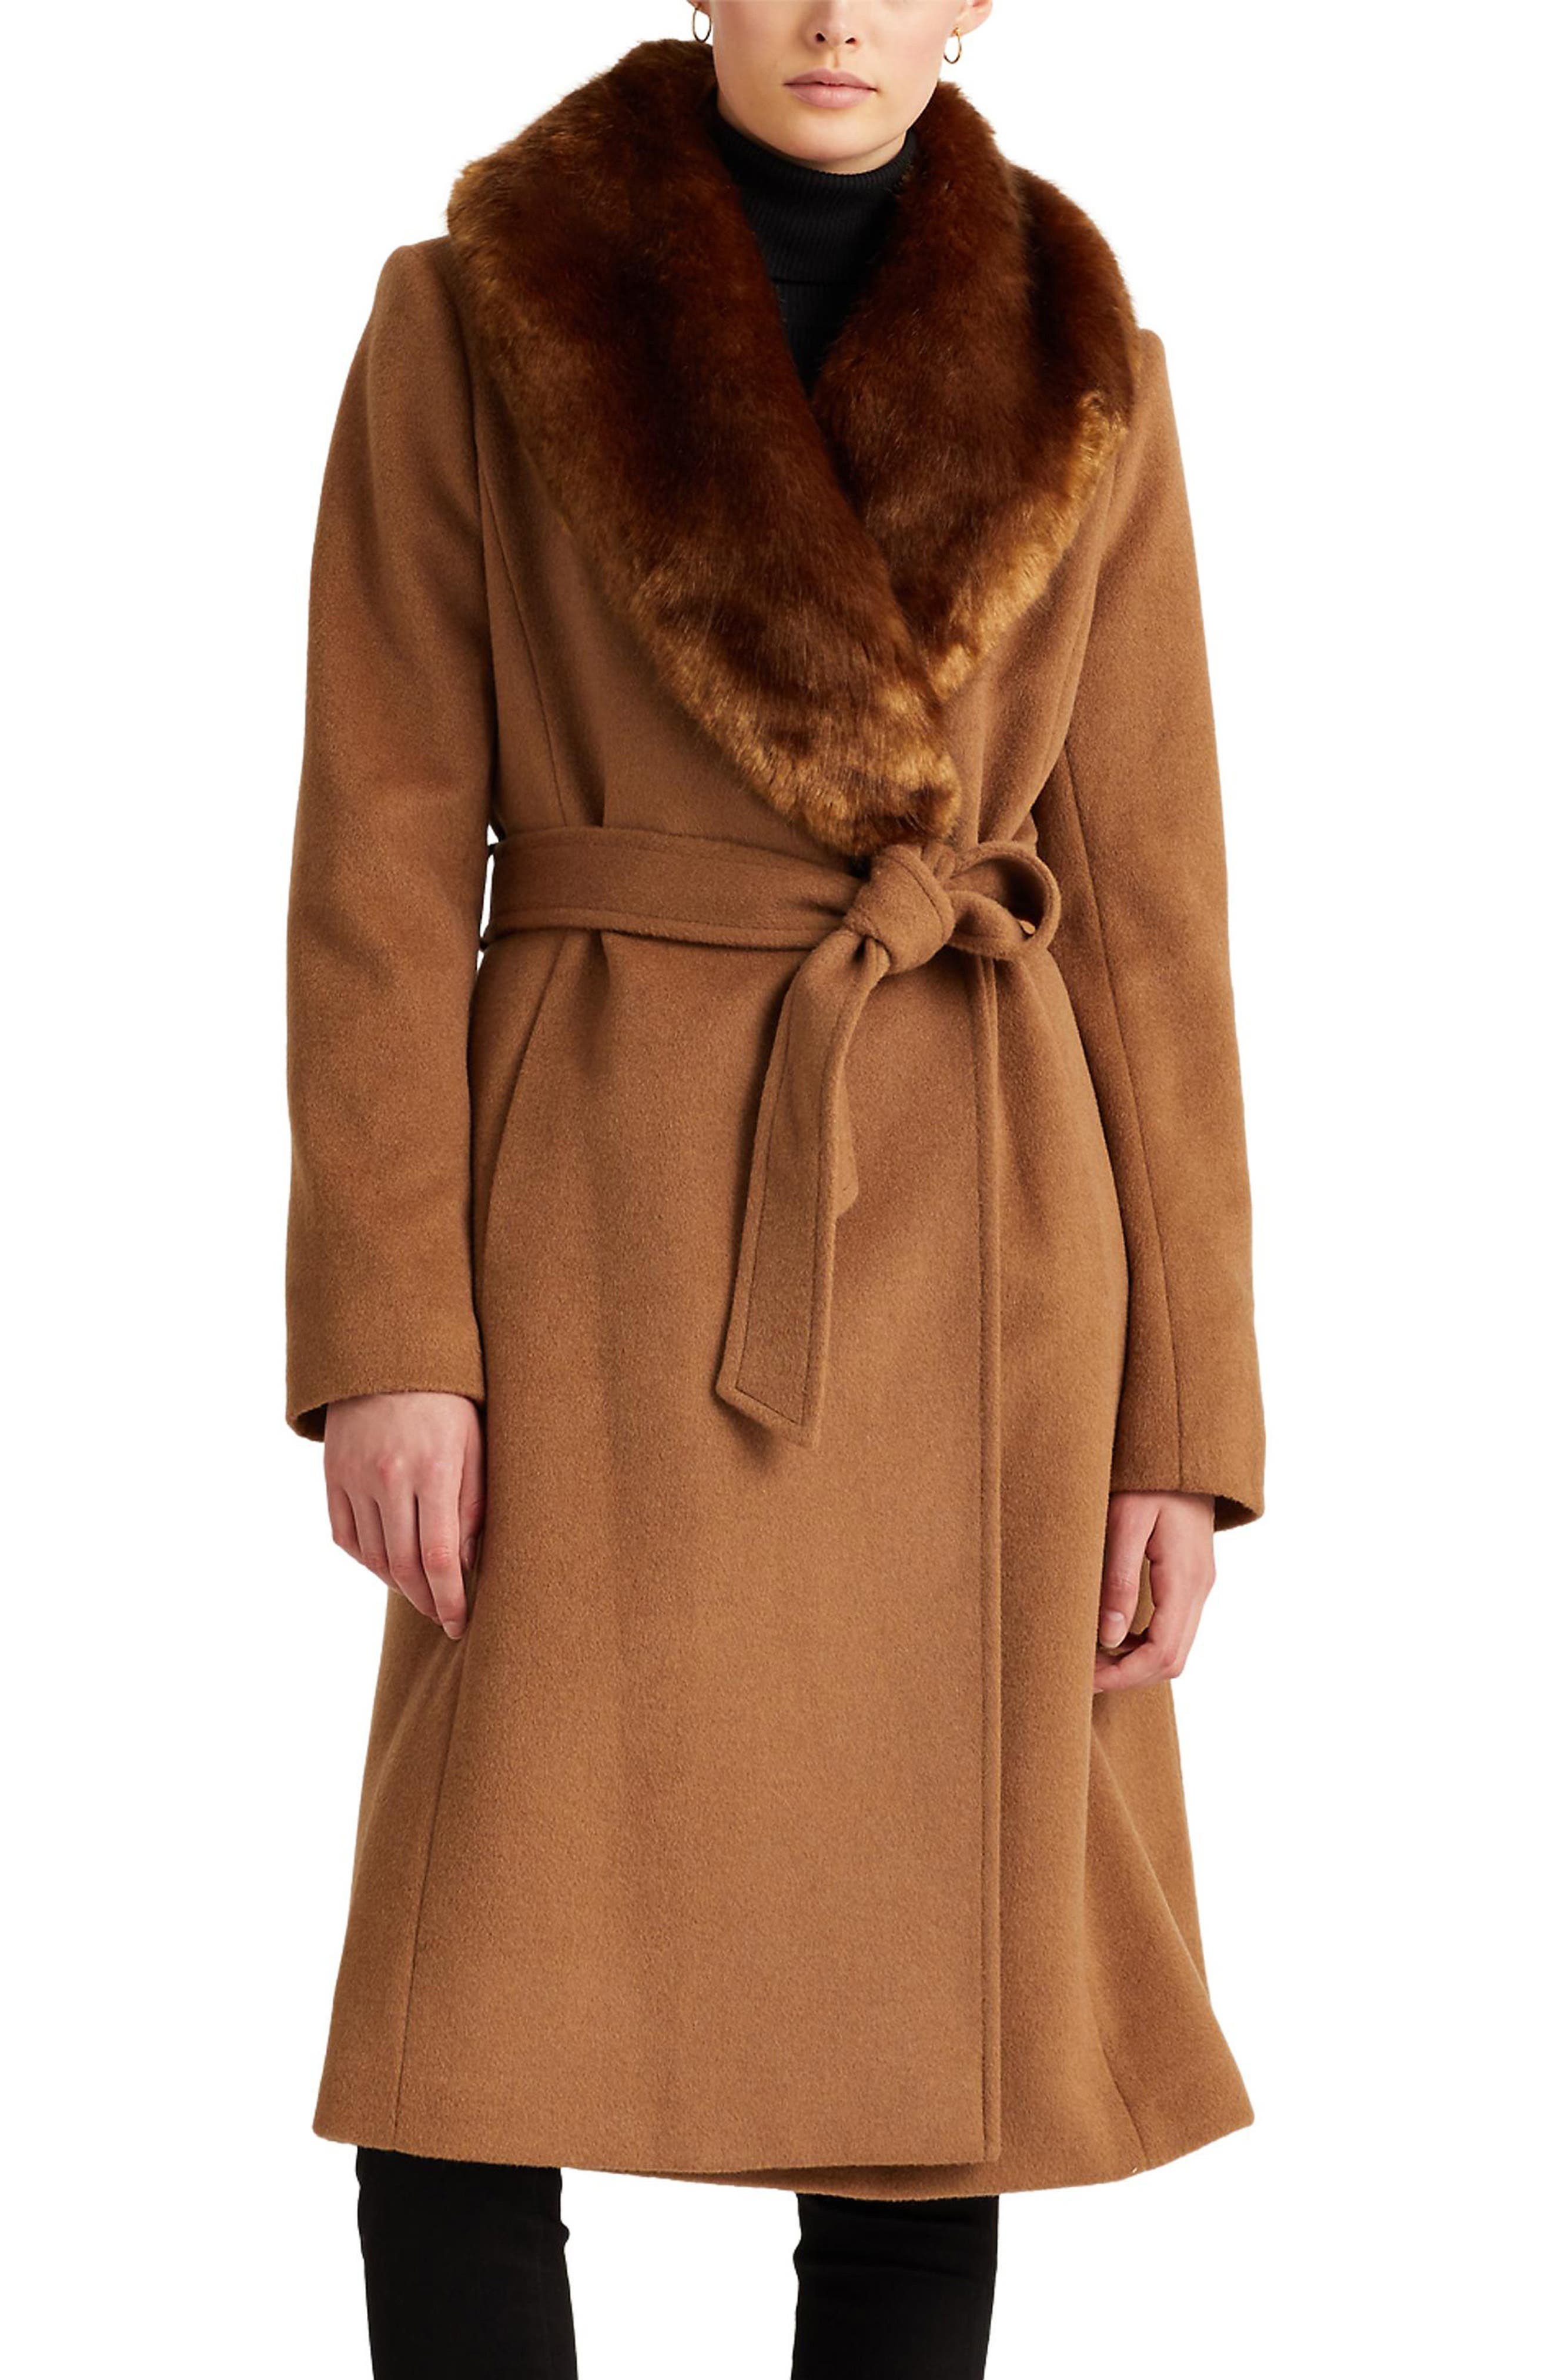 1930s Style Clothing and Fashion Womens Lauren Ralph Lauren Wool Blend Belted Wrap Coat With Faux Fur Collar $179.92 AT vintagedancer.com